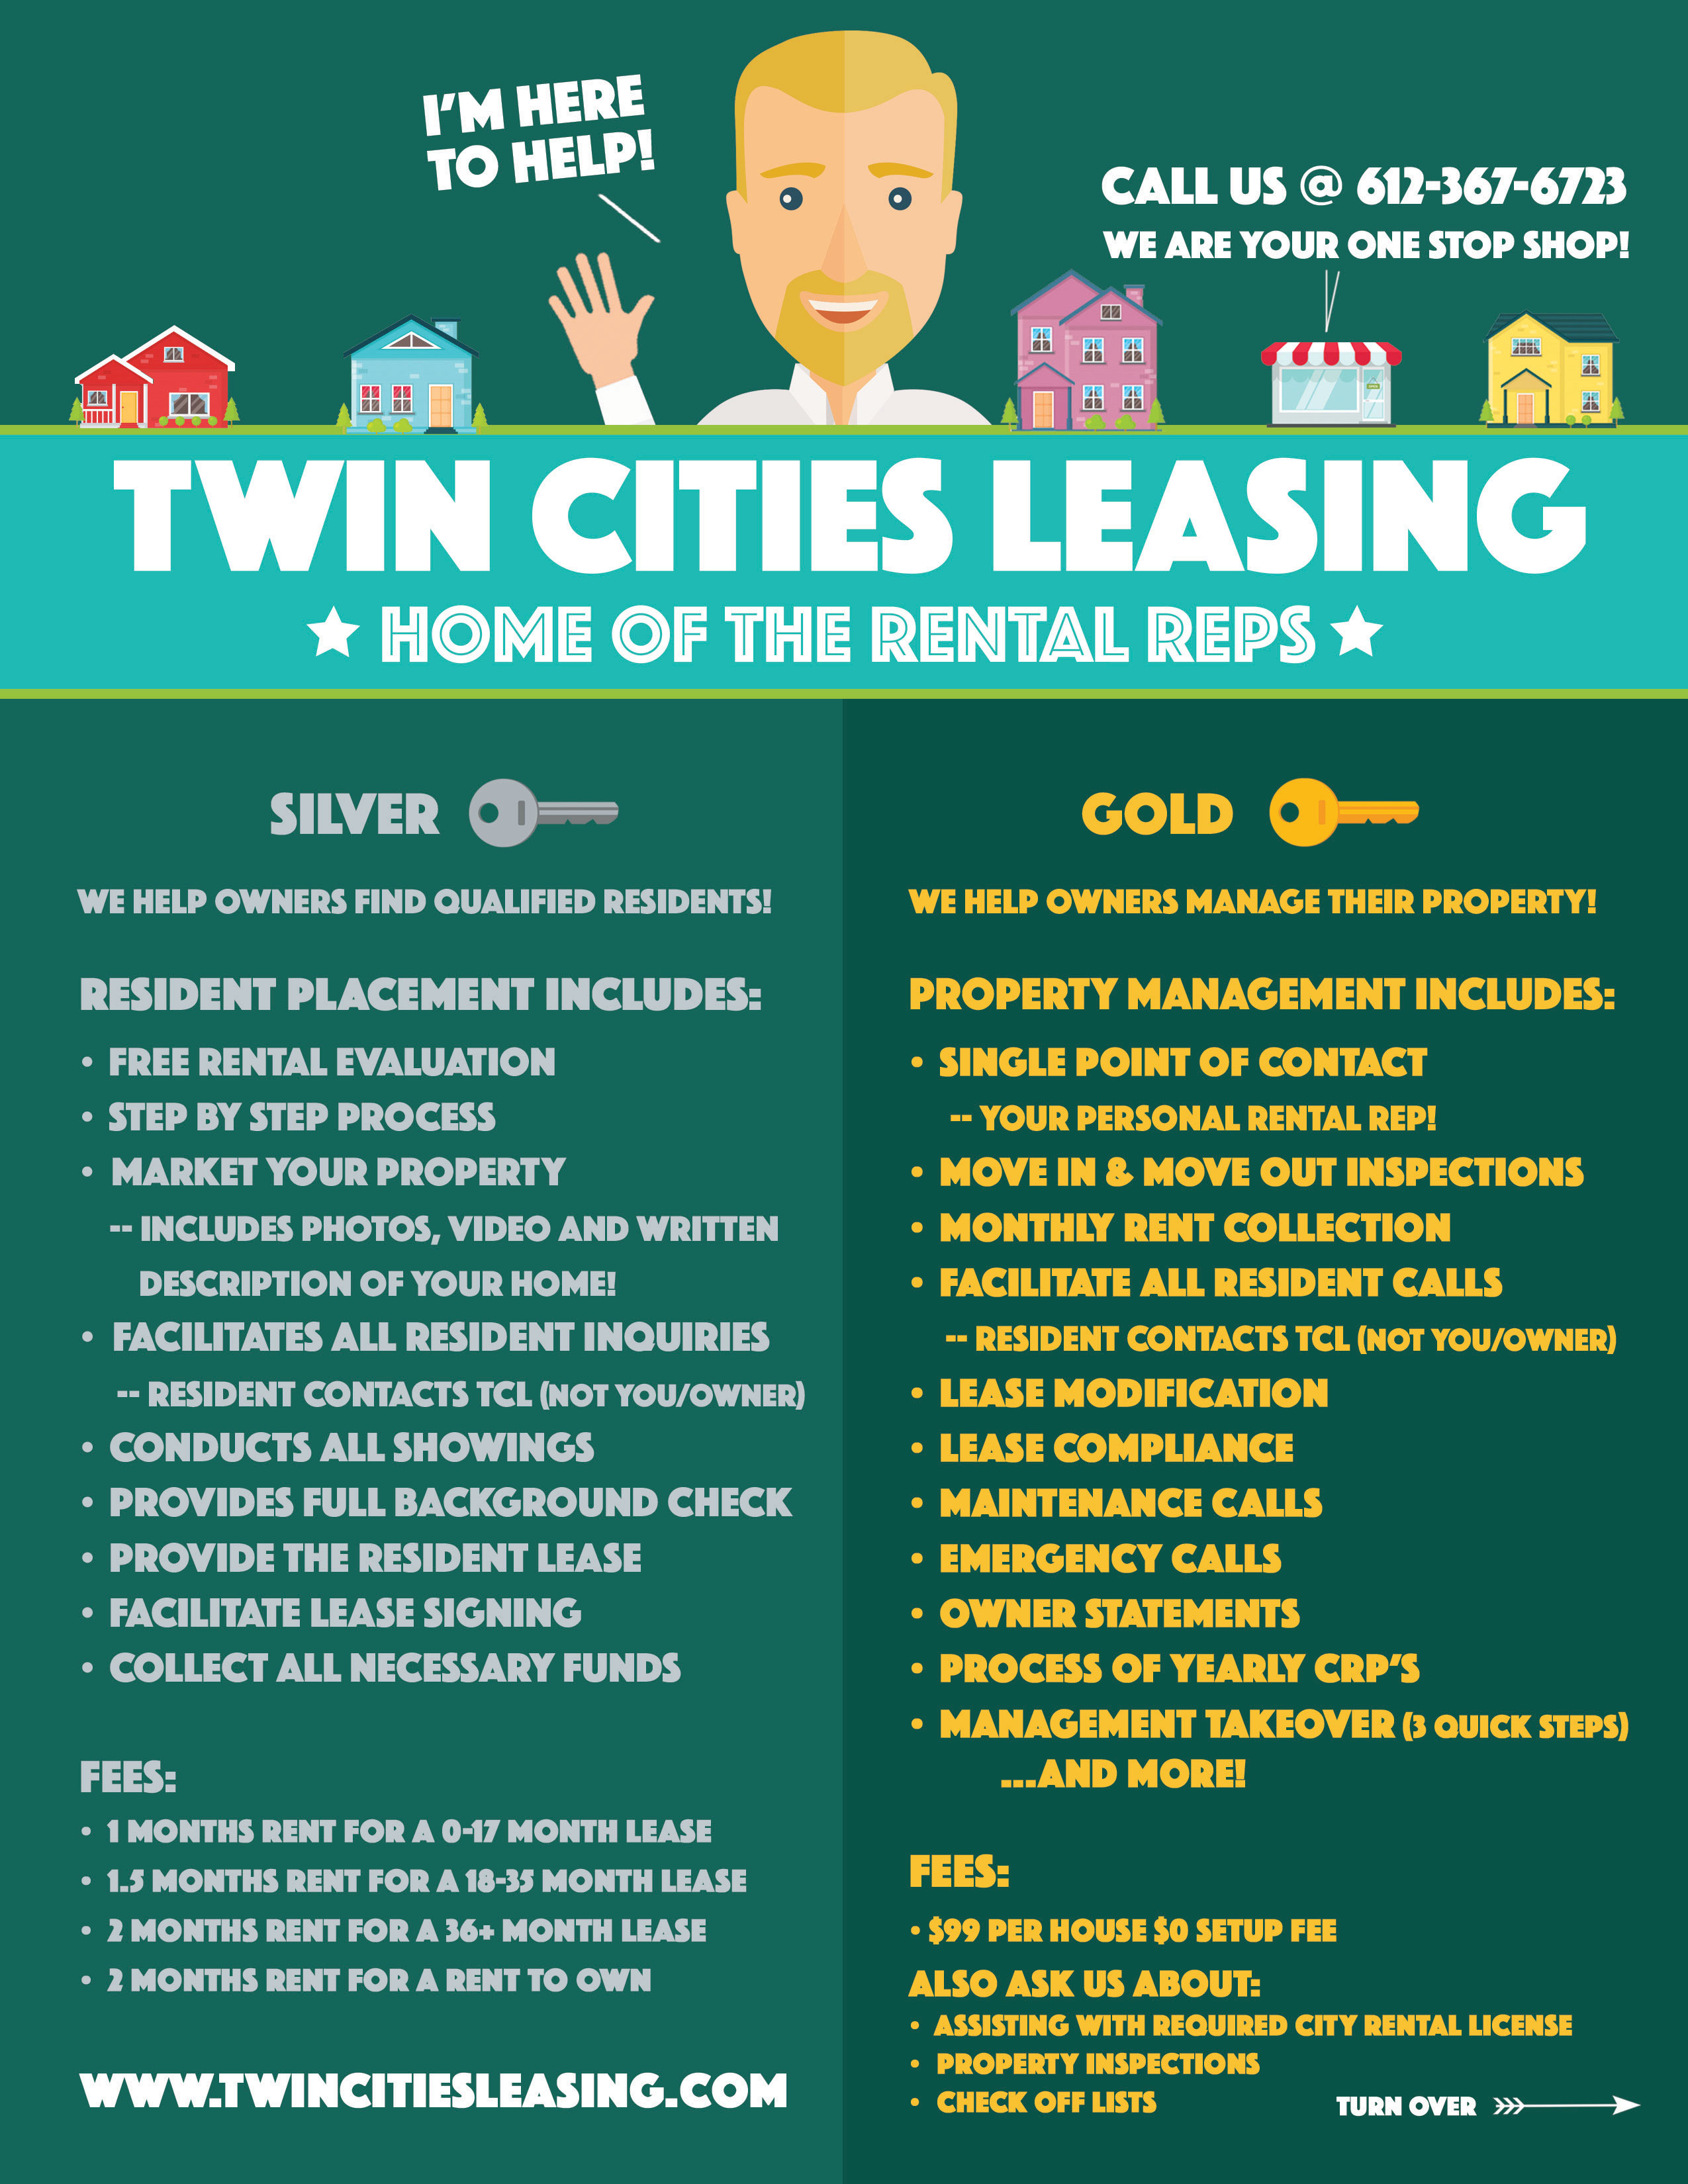 twin-cities-leasing-rental-reps-mn-9